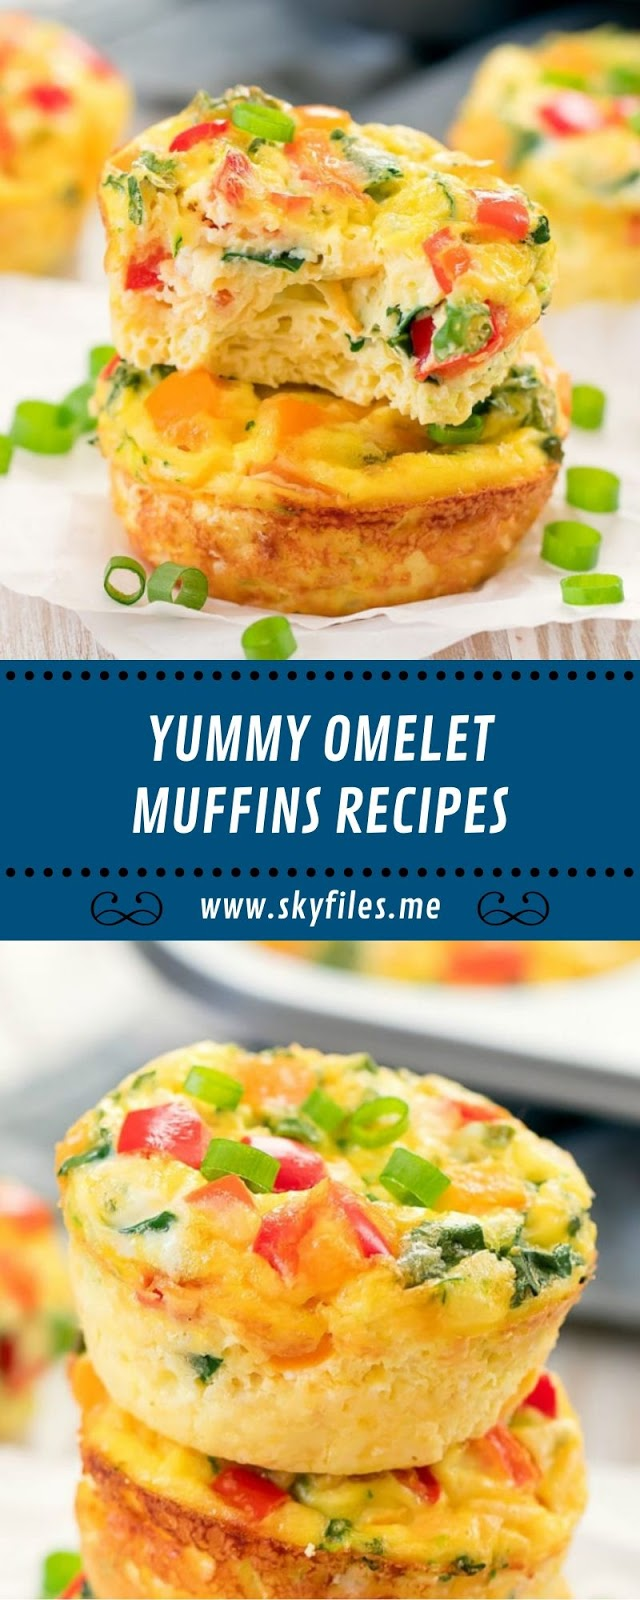 YUMMY OMELET MUFFINS RECIPES